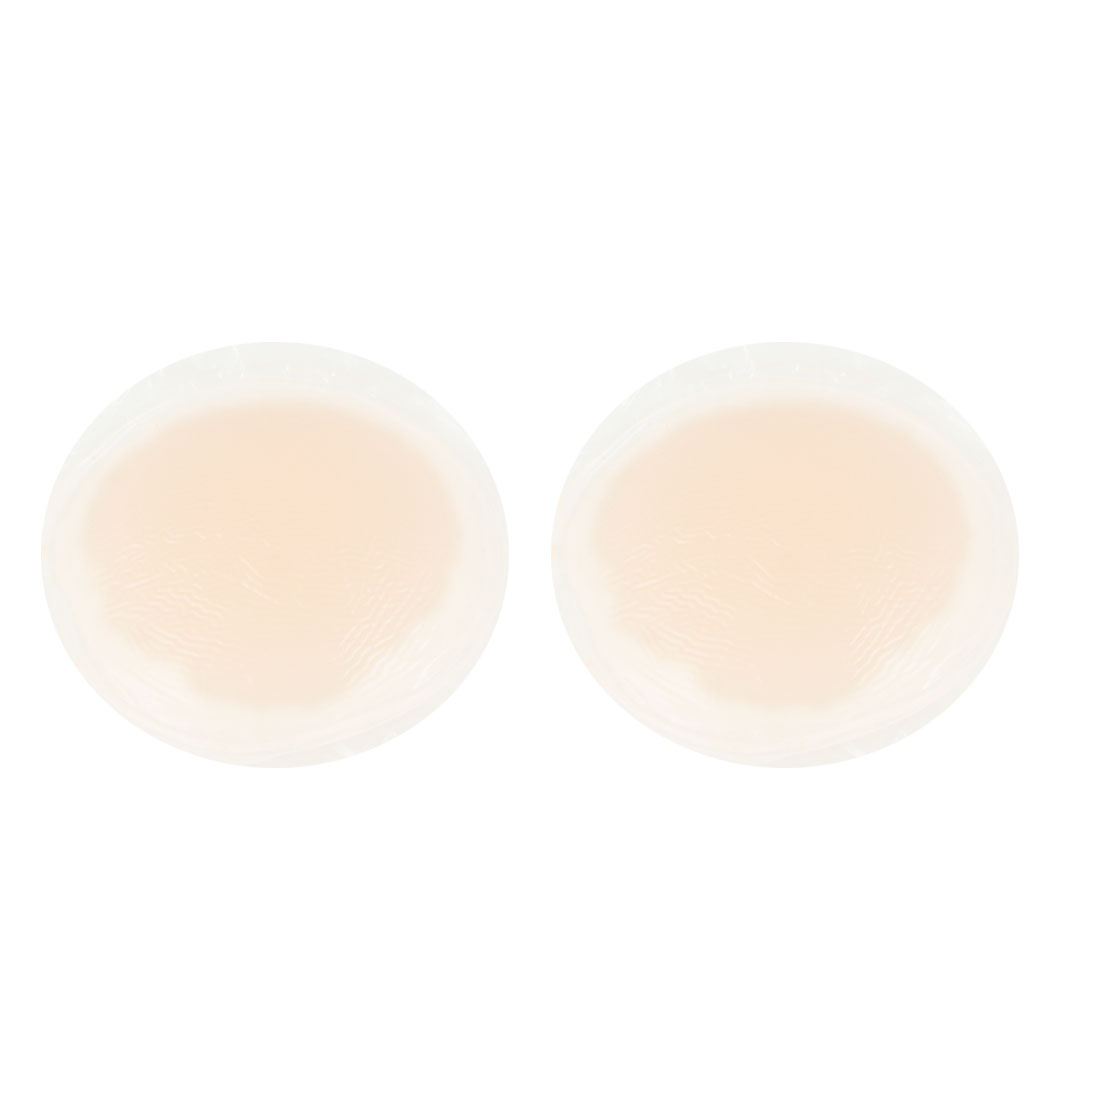 "2 Pcs 2.4"" Diameter Silicone Nipple Cover Pad Beige for Ladies"